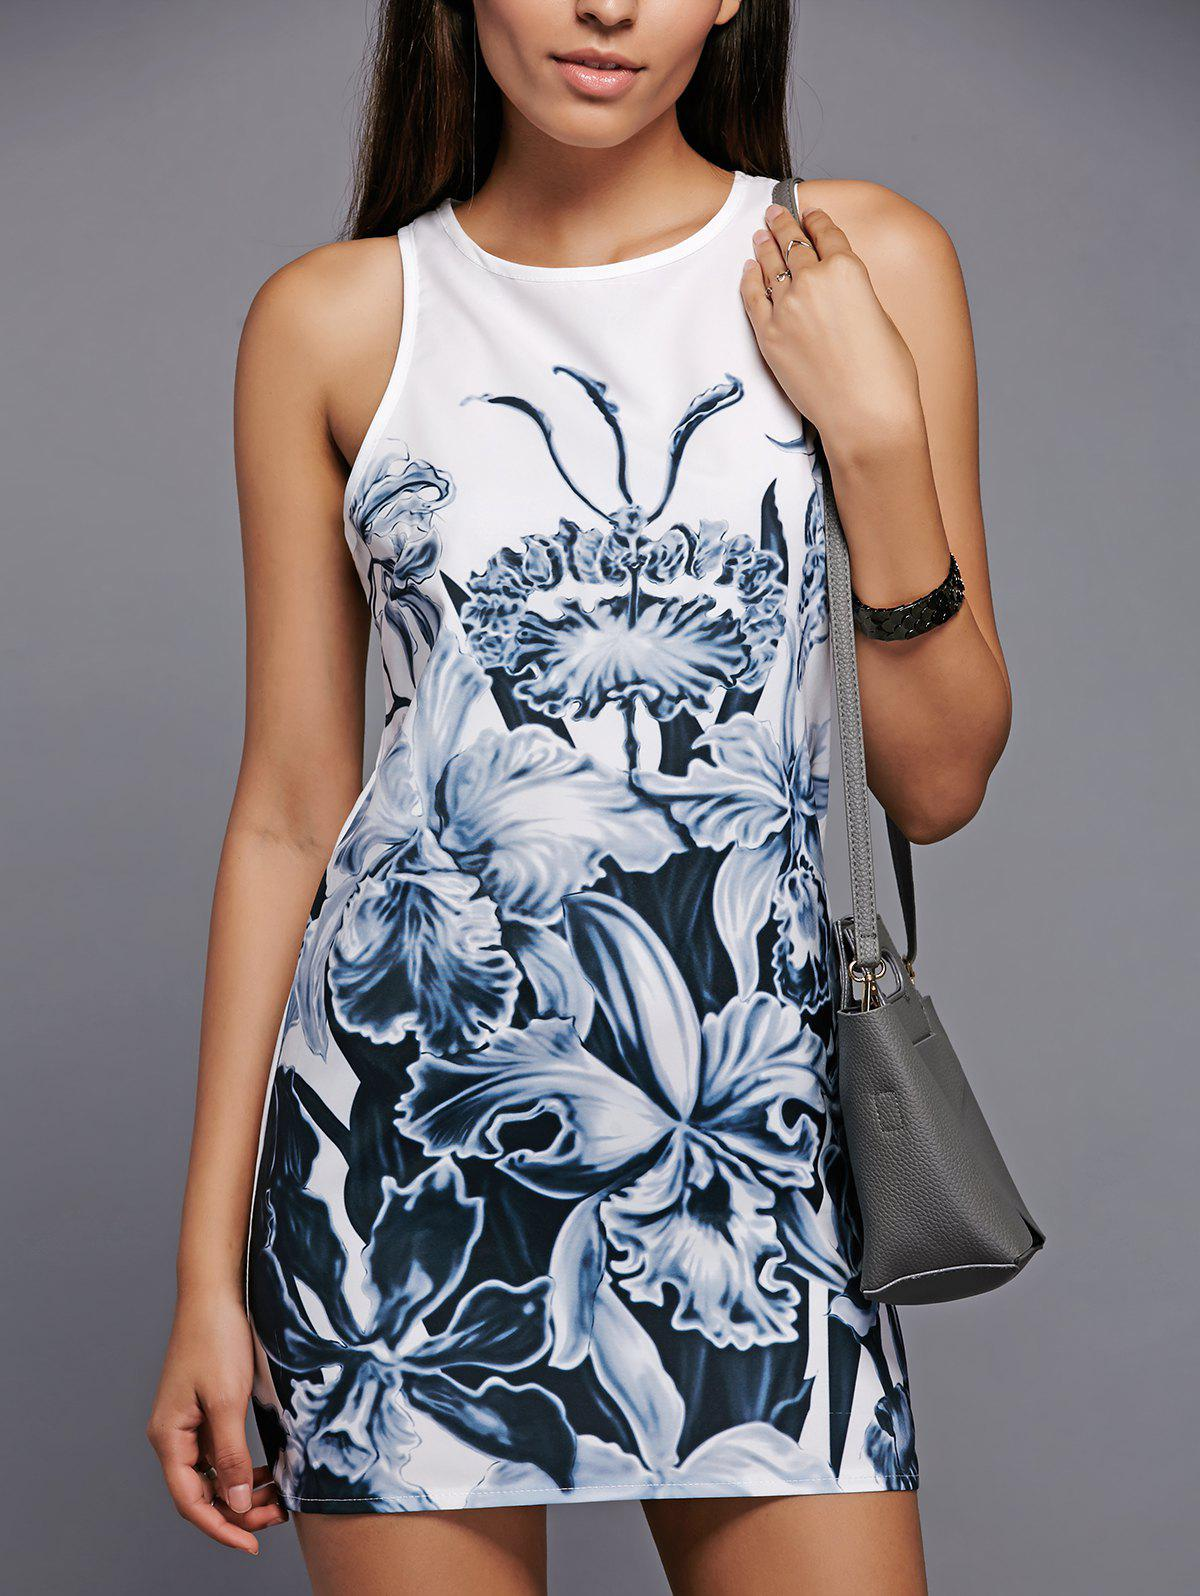 Casual Floral Print Round Neck Sleeveless Dress - WHITE S